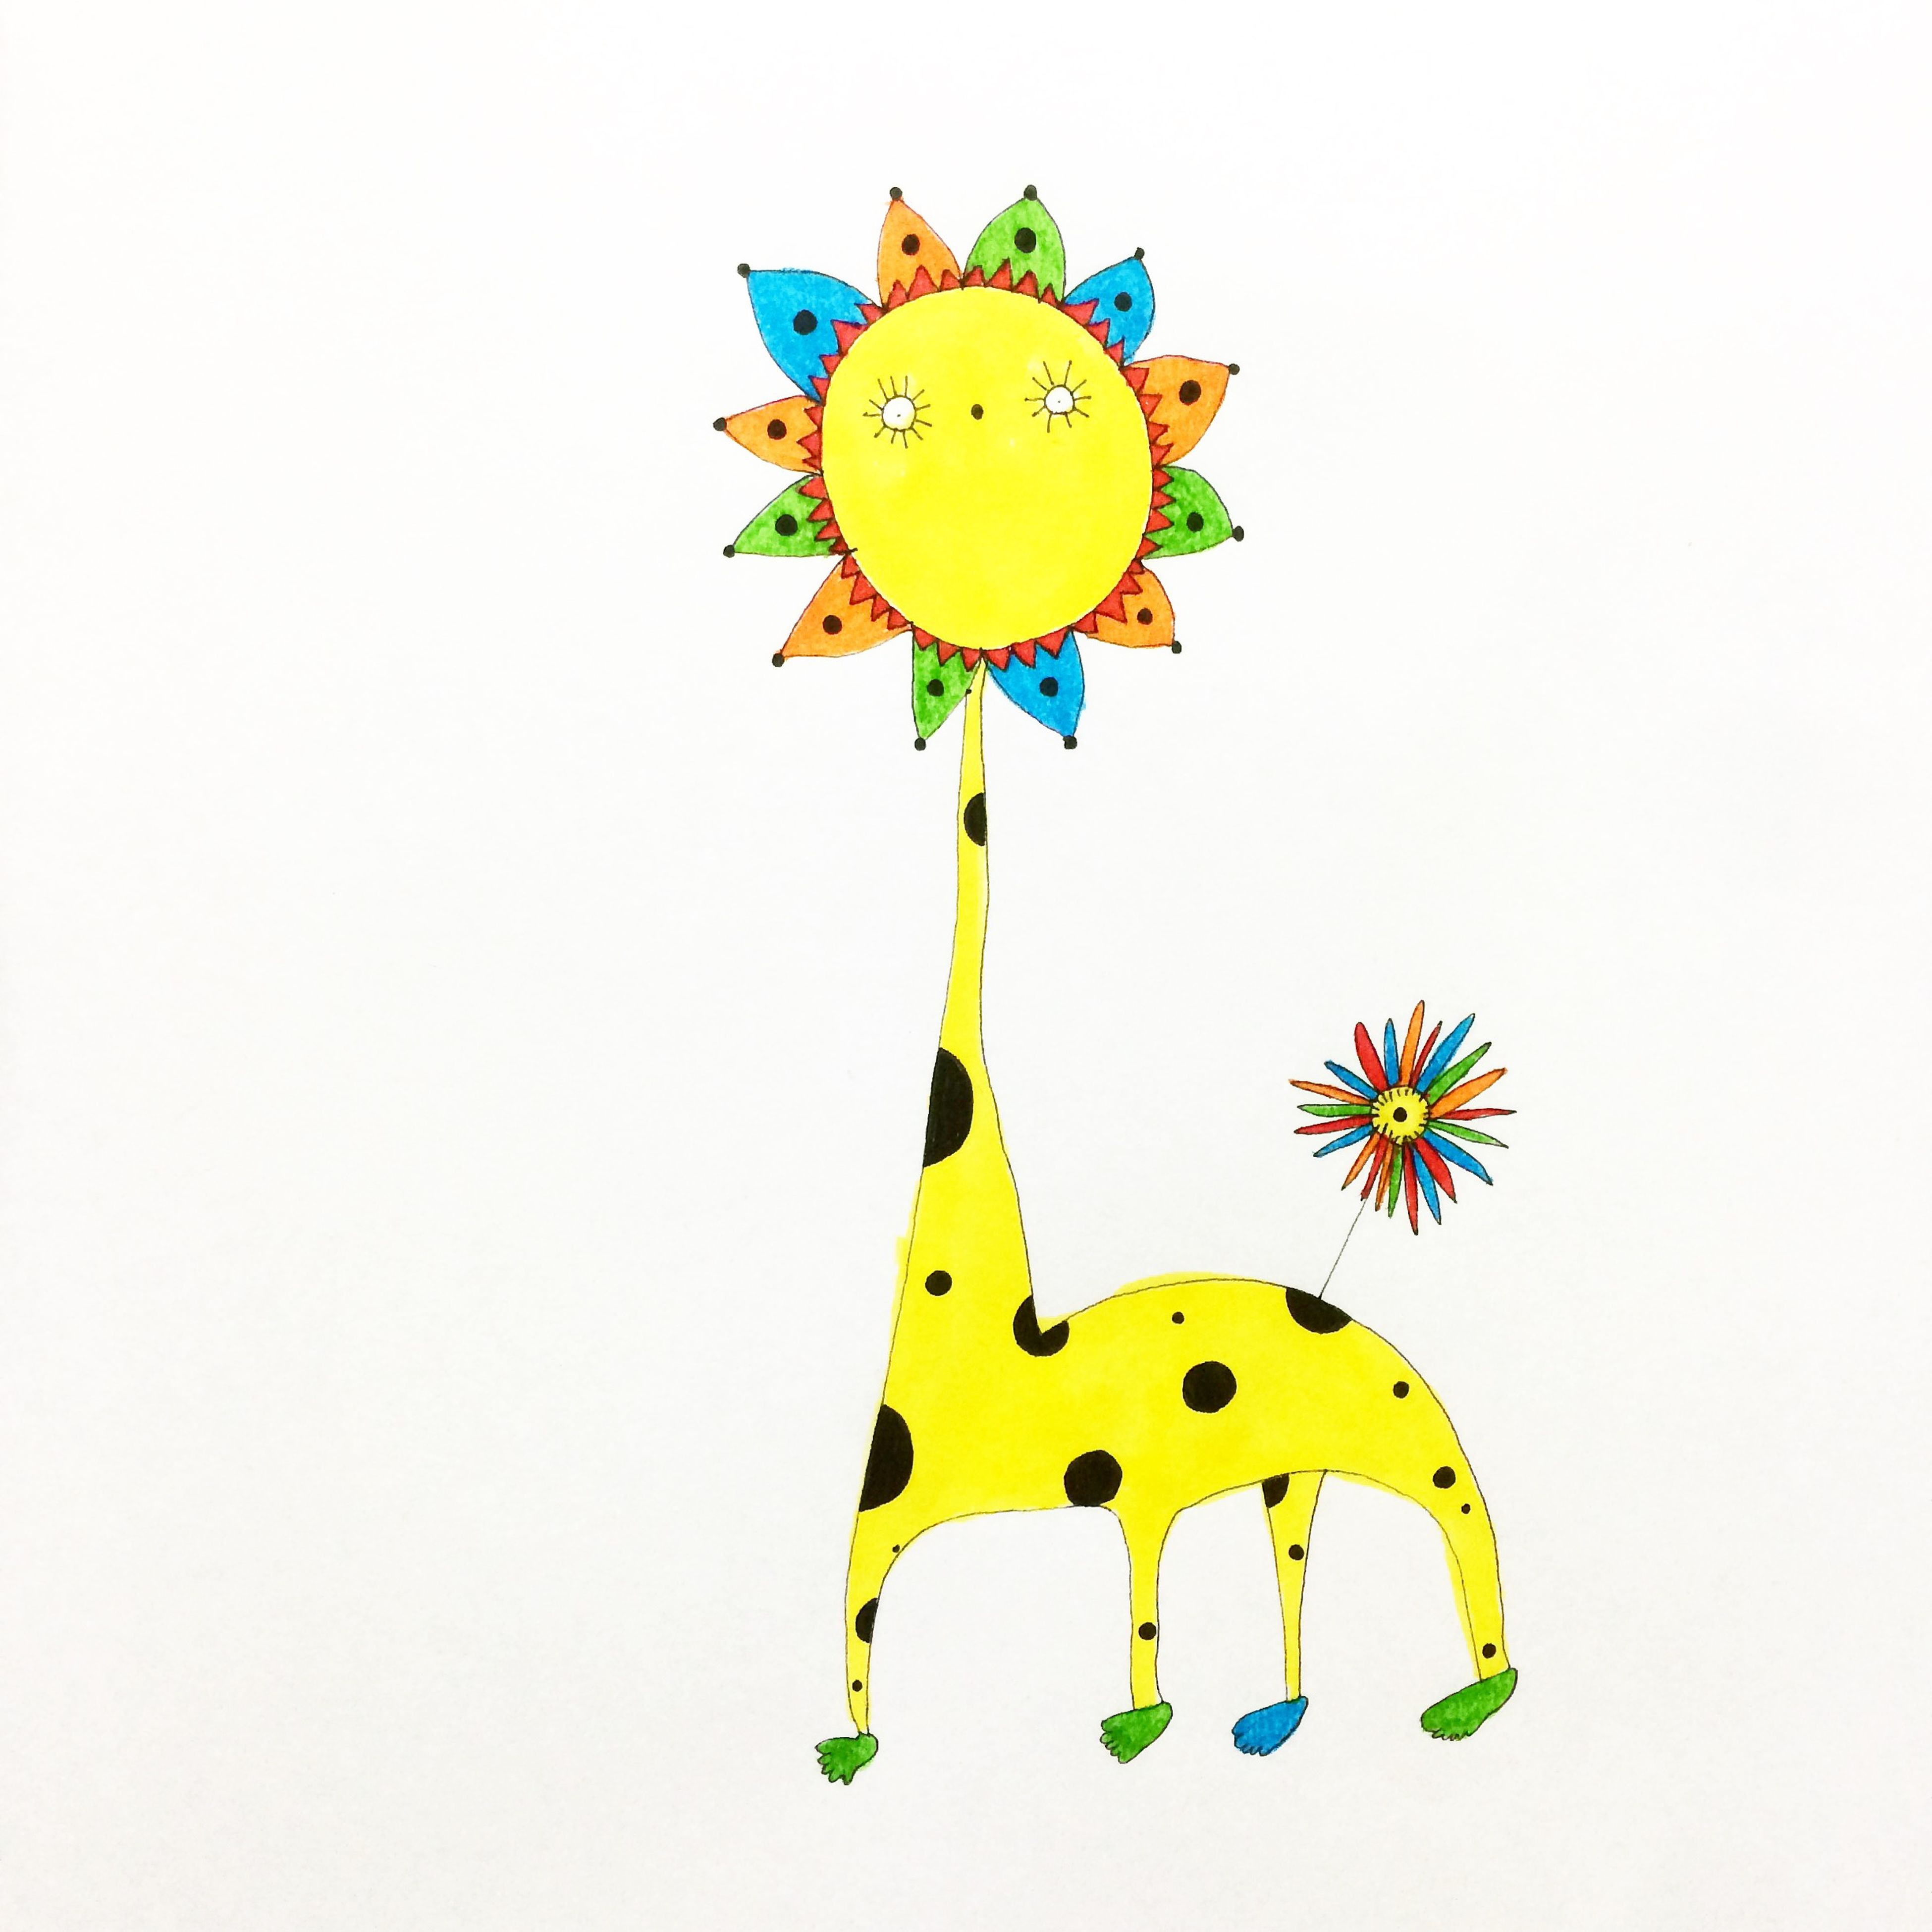 creativity, art, yellow, art and craft, multi colored, studio shot, white background, animal representation, copy space, toy, single object, clear sky, still life, colorful, close-up, human representation, cut out, no people, decoration, low angle view